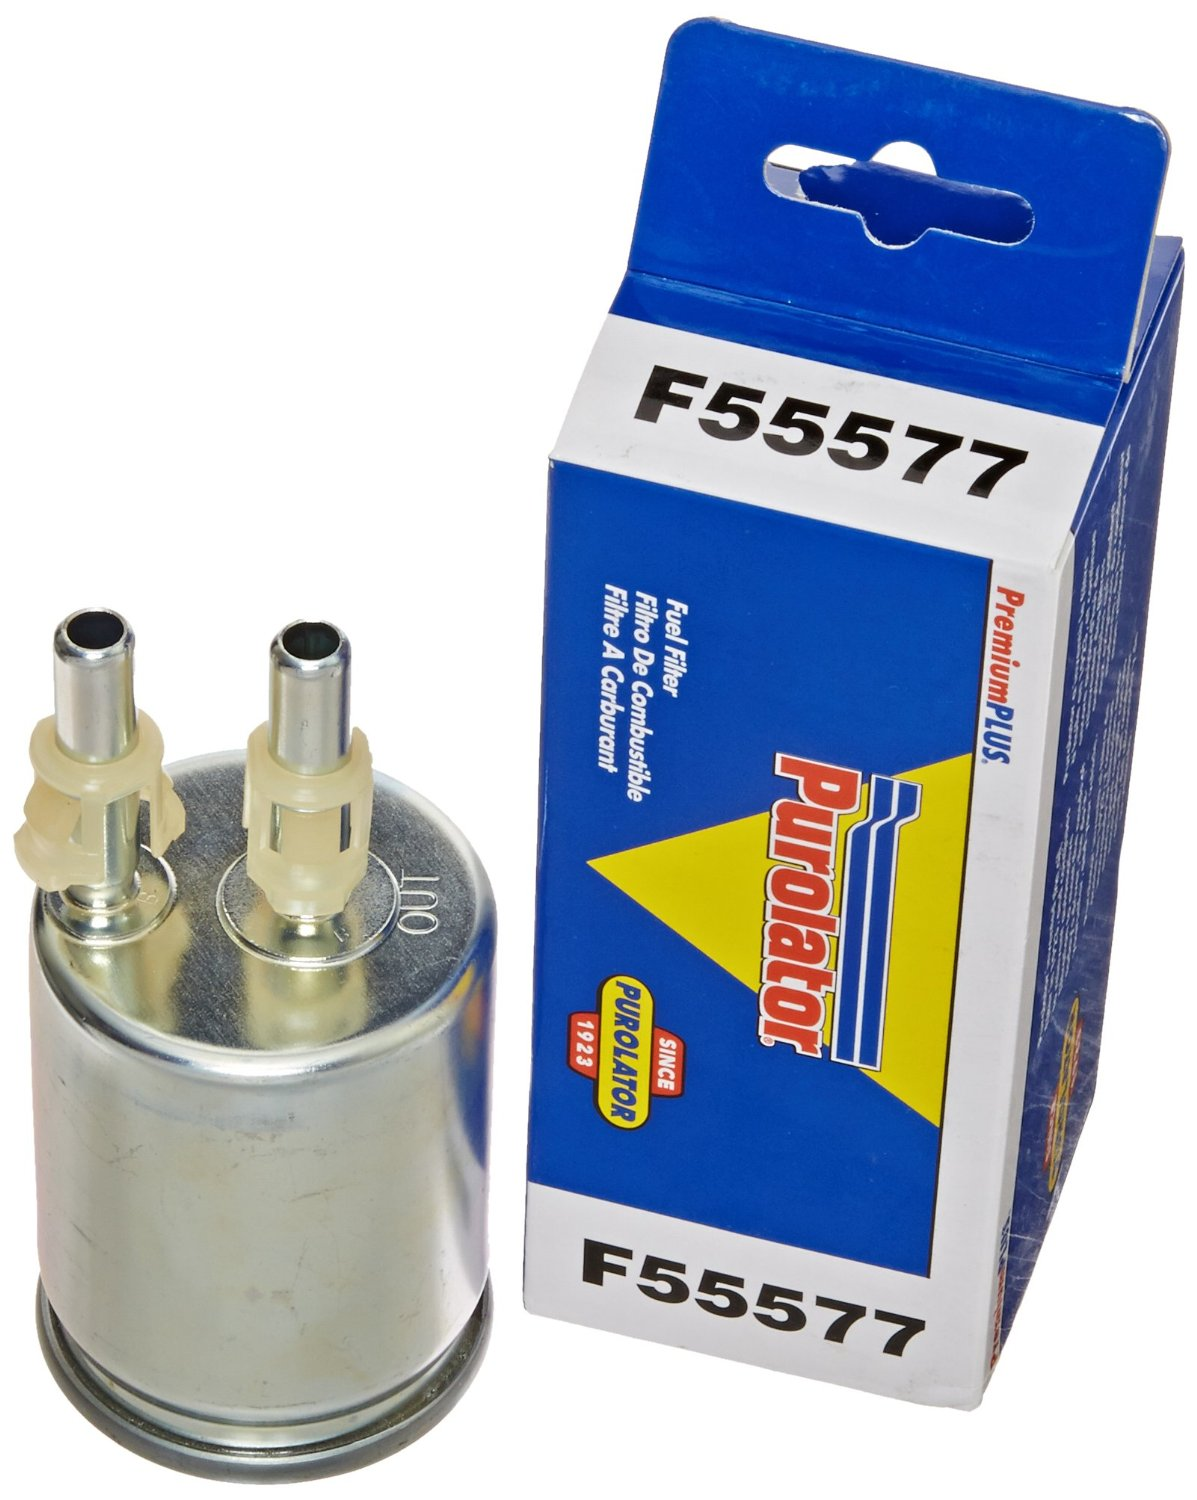 How To Replace Fuel Filter03 R Chevy Ssr Forum 2003 Silverado Filter Location Click Image For Larger Version Name Purolator F55577 Views 496 Size